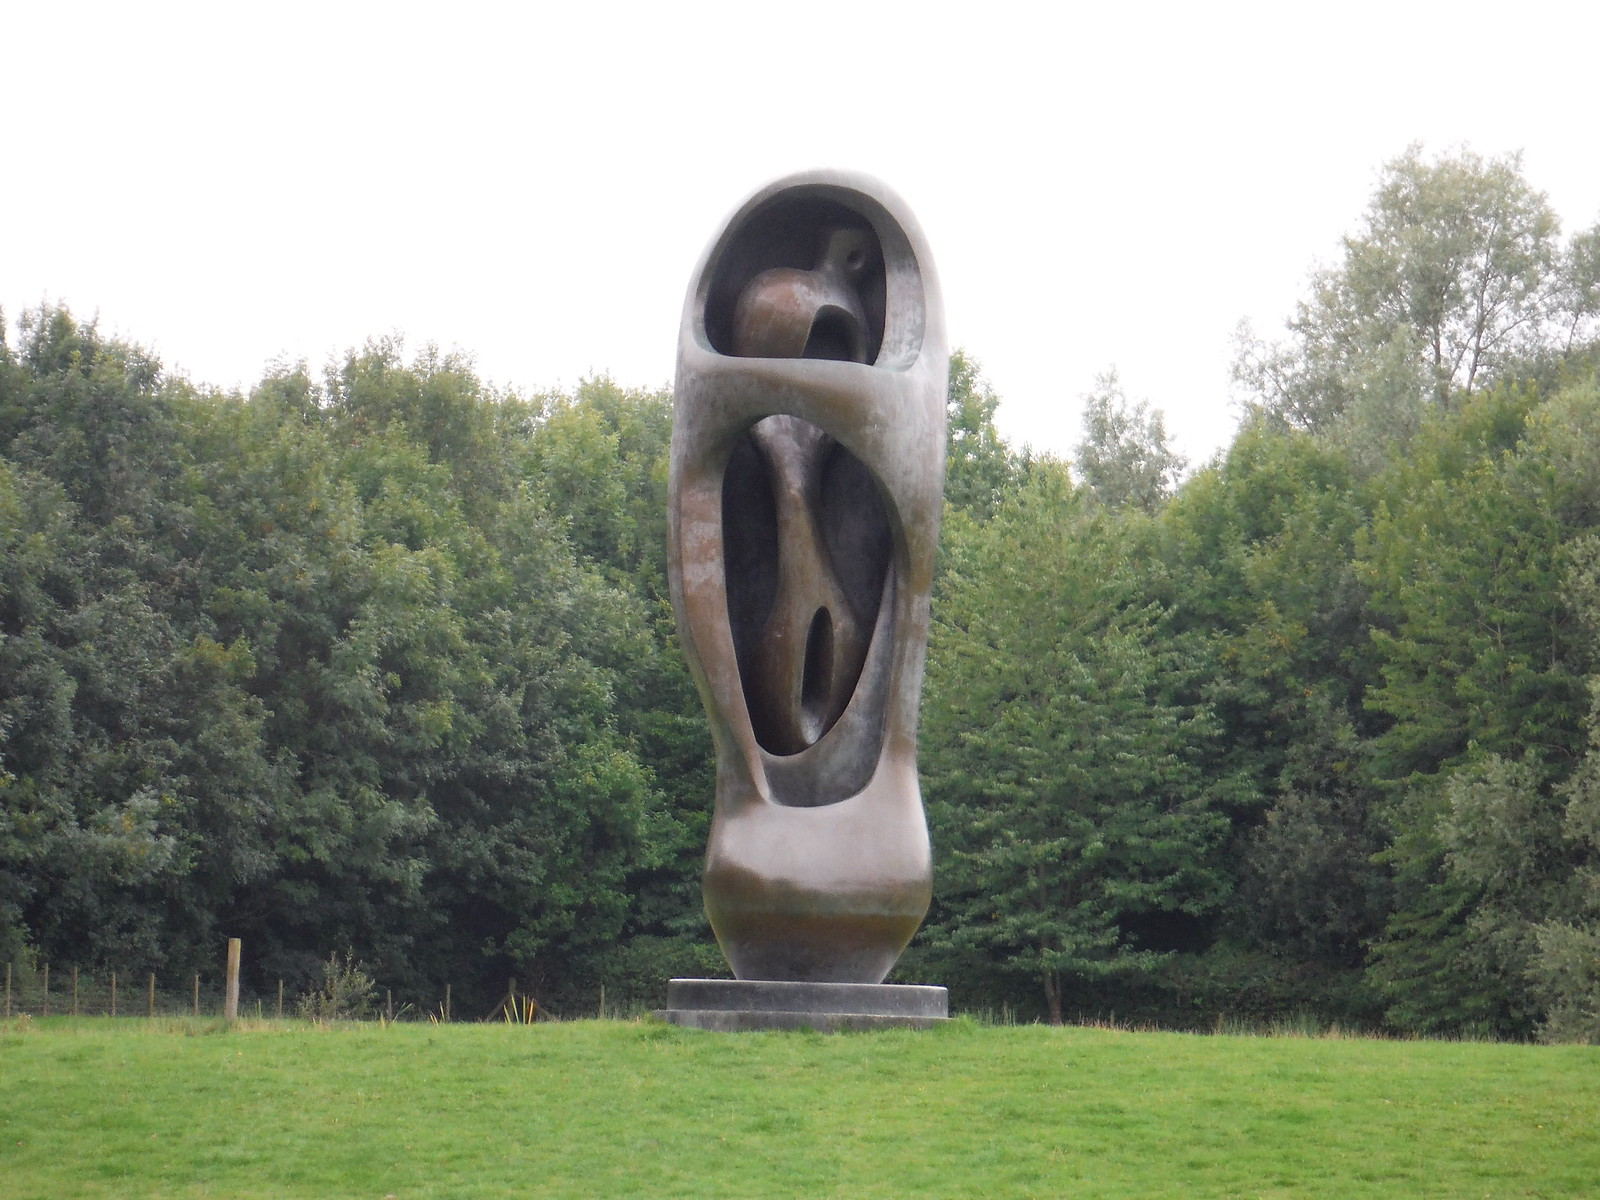 Large Upright Internal/External (1981-82) SWC Walk 164 Roydon to Sawbridgeworth via Henry Moore Foundation